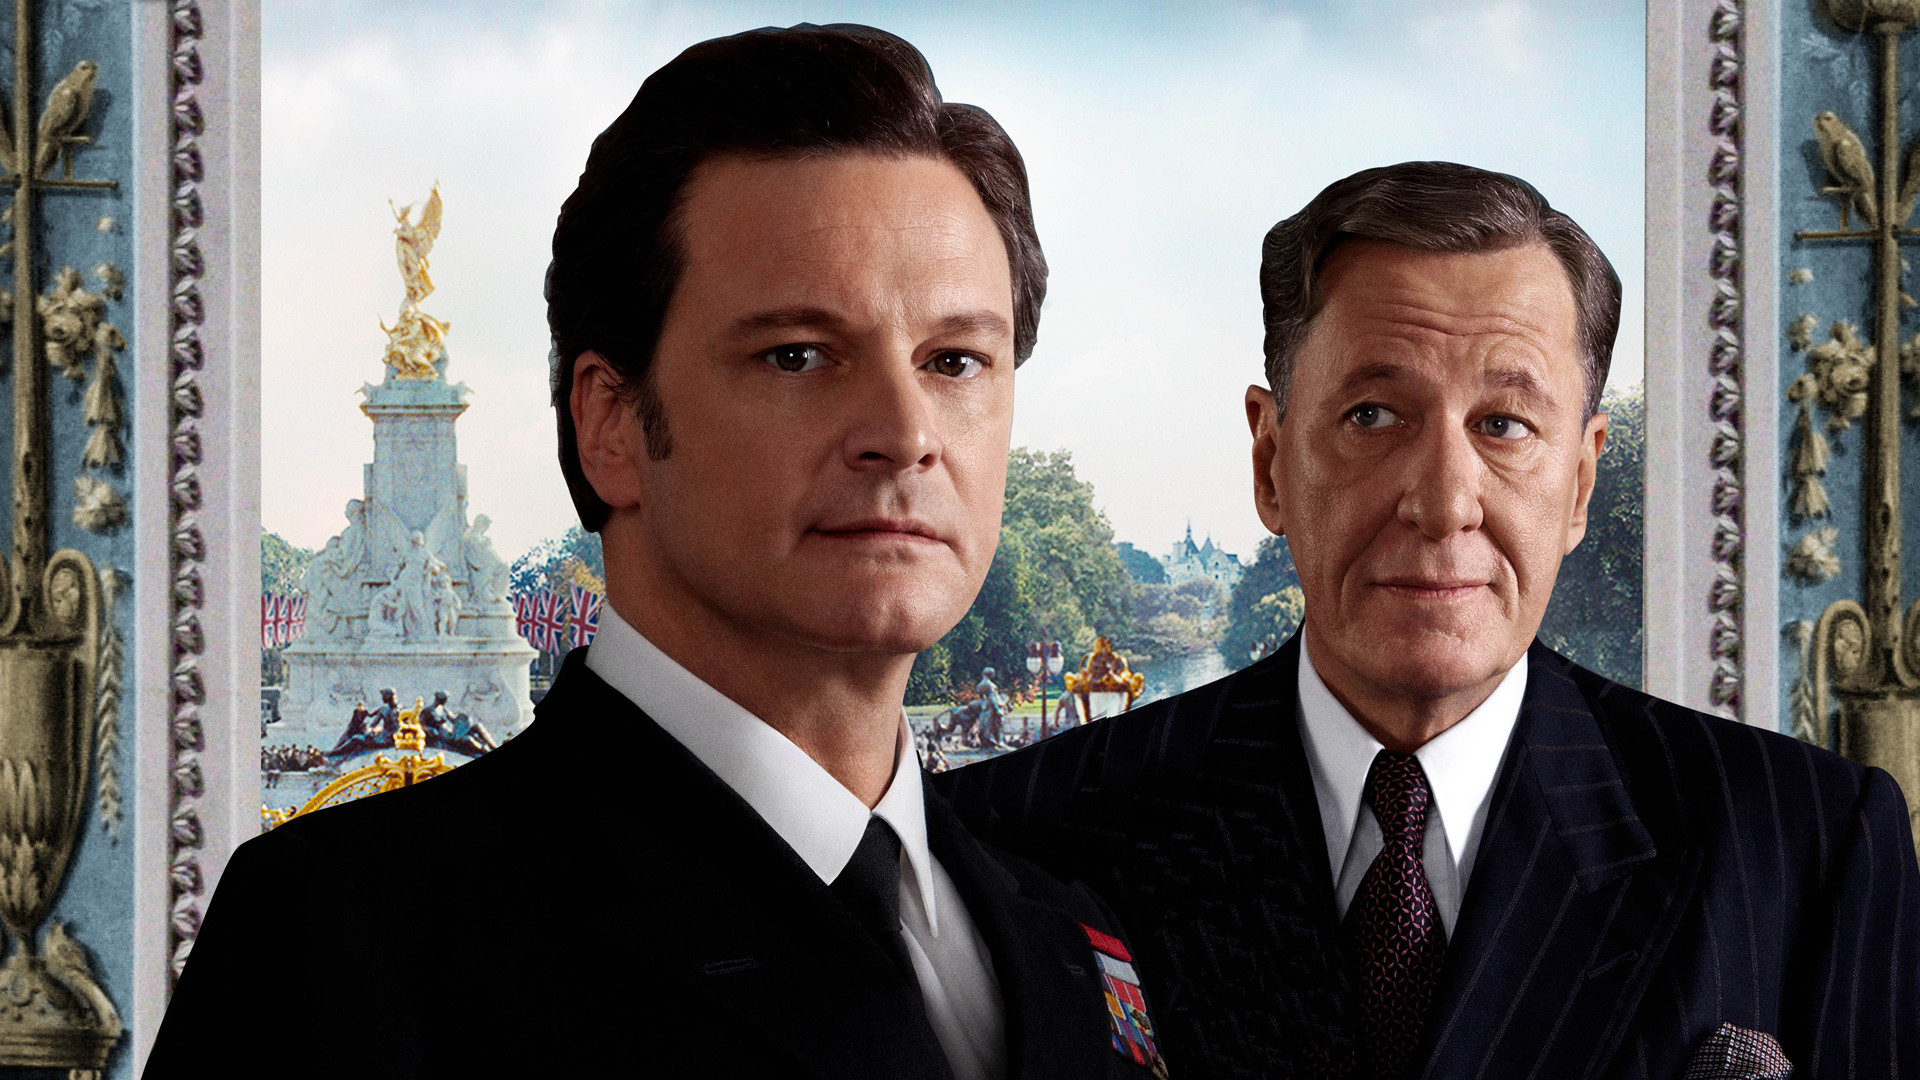 the kings speech Product description candidates for president and prime minister choose to run, but kings rarely have a choice such was the case for prince albert, known by family members as bertie (colin firth), whose stutter made public speaking difficult.